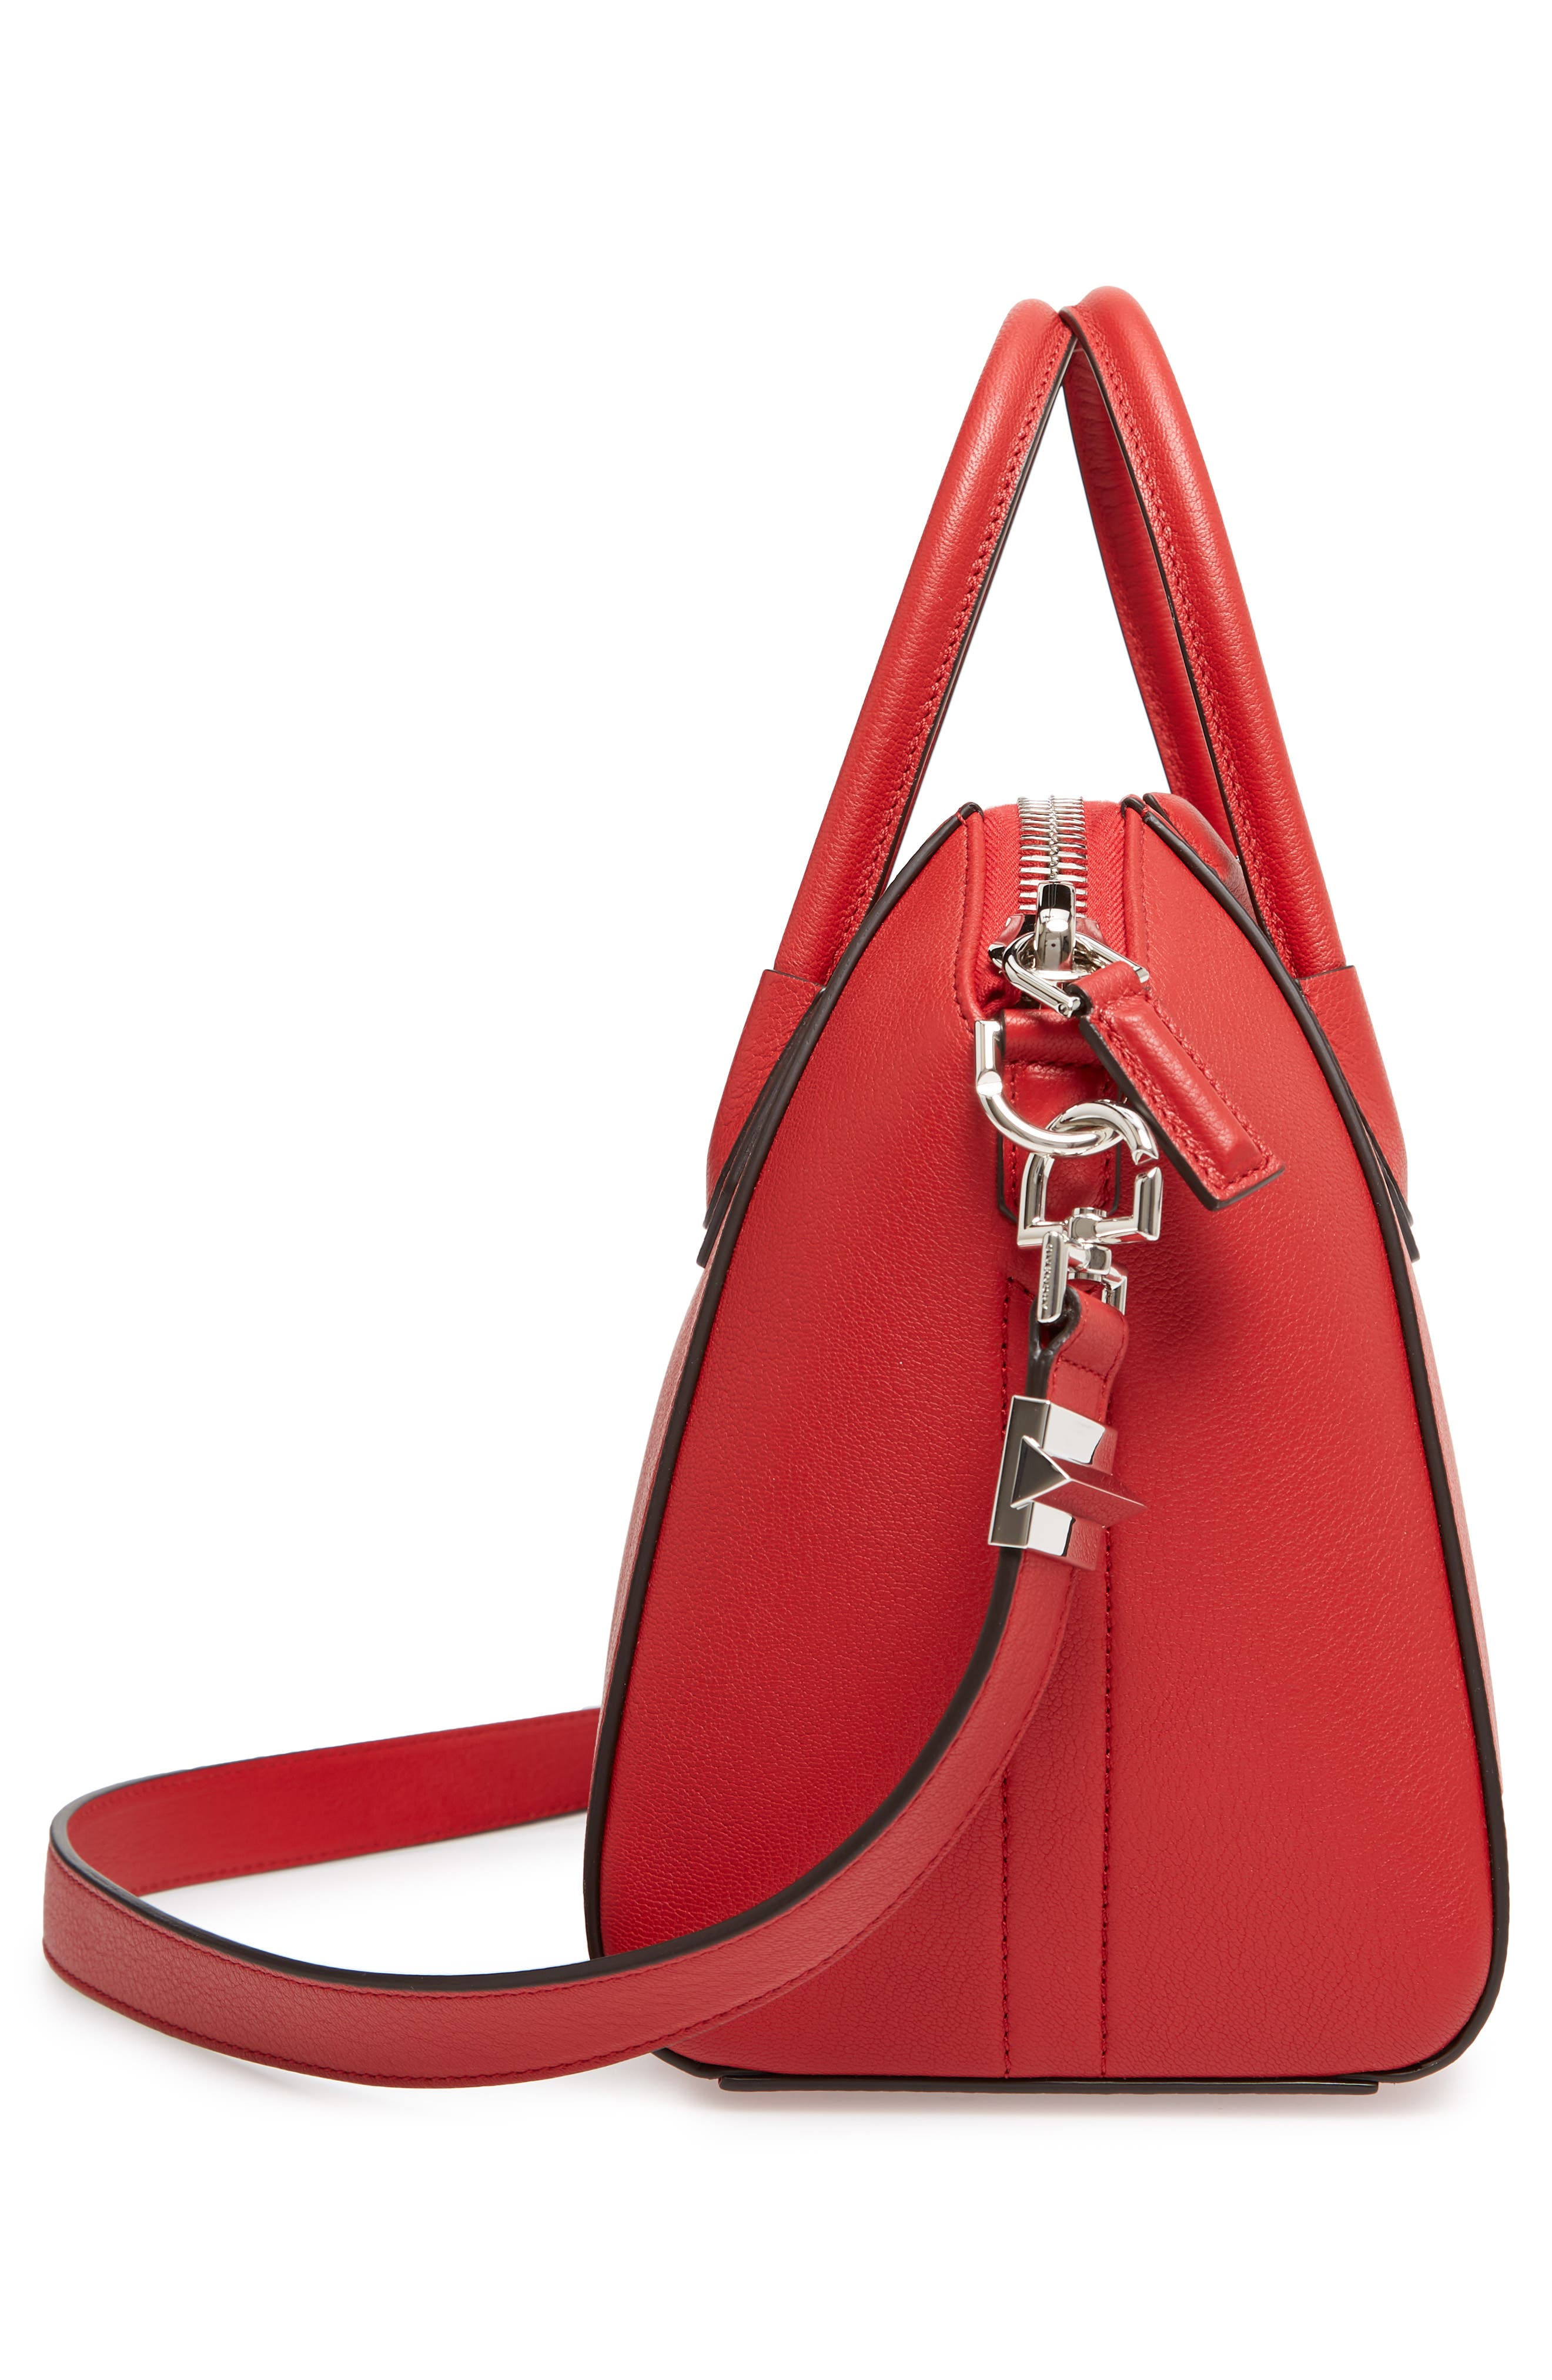 'Small Antigona' Leather Satchel,                             Alternate thumbnail 4, color,                             Bright Red